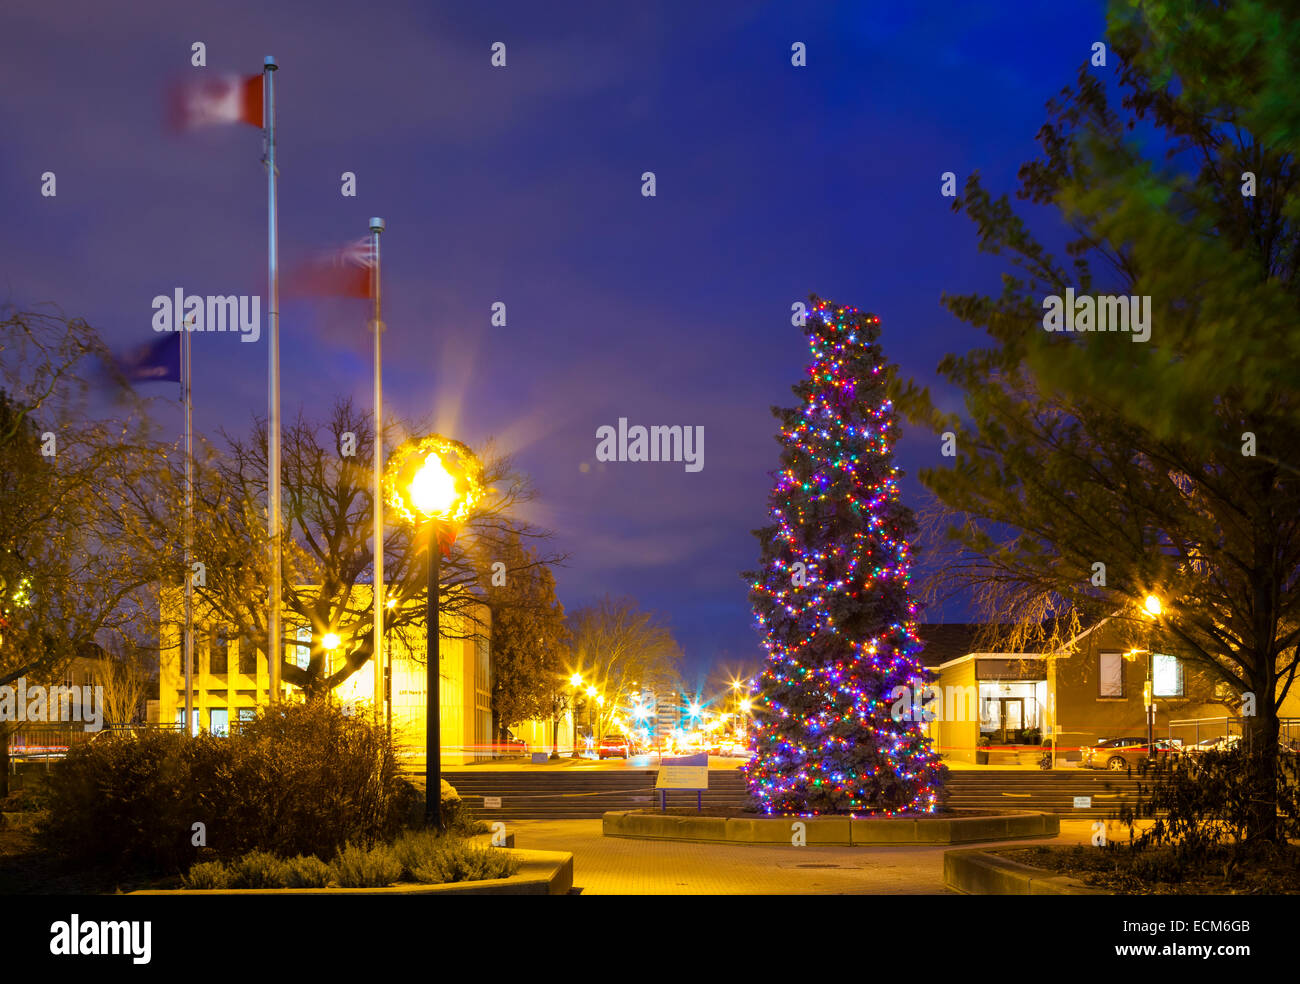 A very large Christmas Tree (Blue Spruce) covered in lights in downtown Oakville, Ontario, Canada. - Stock Image